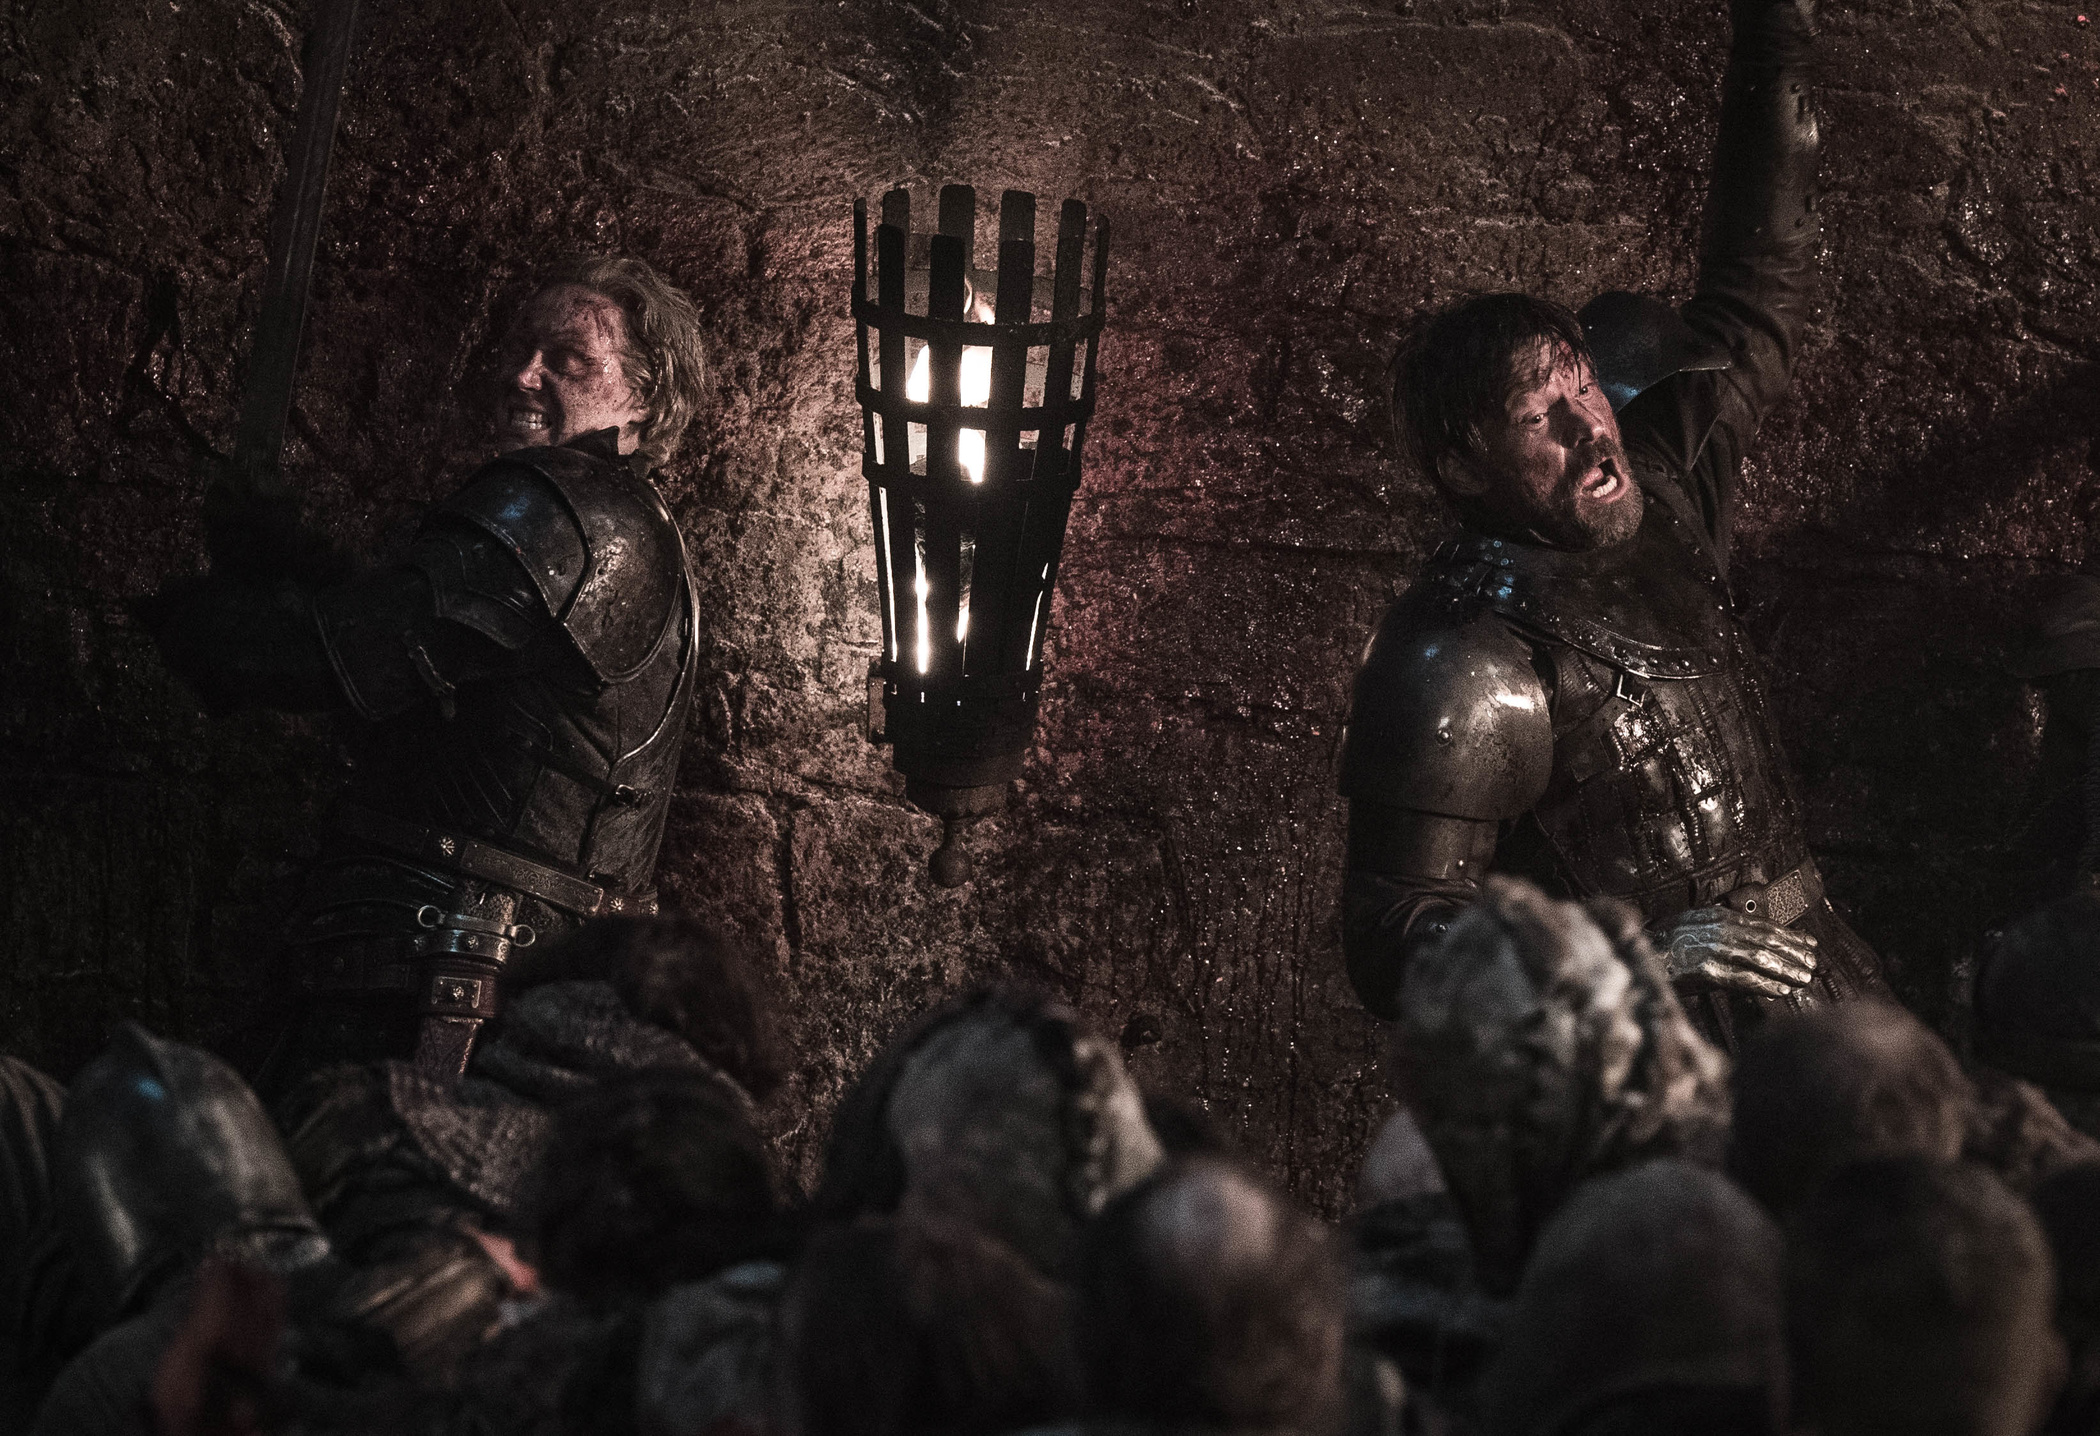 Brienne of Tarth and Jaime Lannister battling during  The Long Night,  the third episode of Game of Thrones's eighth season.